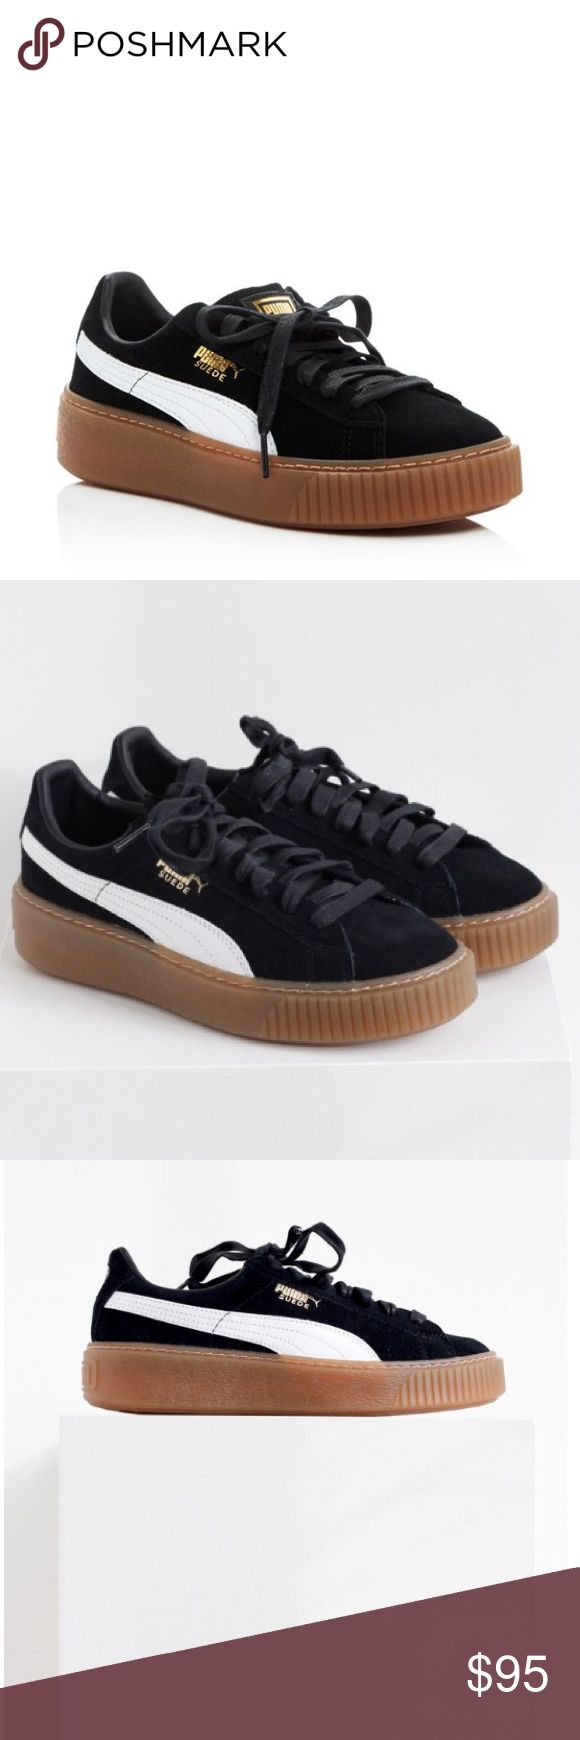 BRAND NEW Puma Platform Sneakers Black PUMA Suede Platform Core Sneaker. New and never worn with box :) Cheaper @ merc. Puma Shoes Sneakers